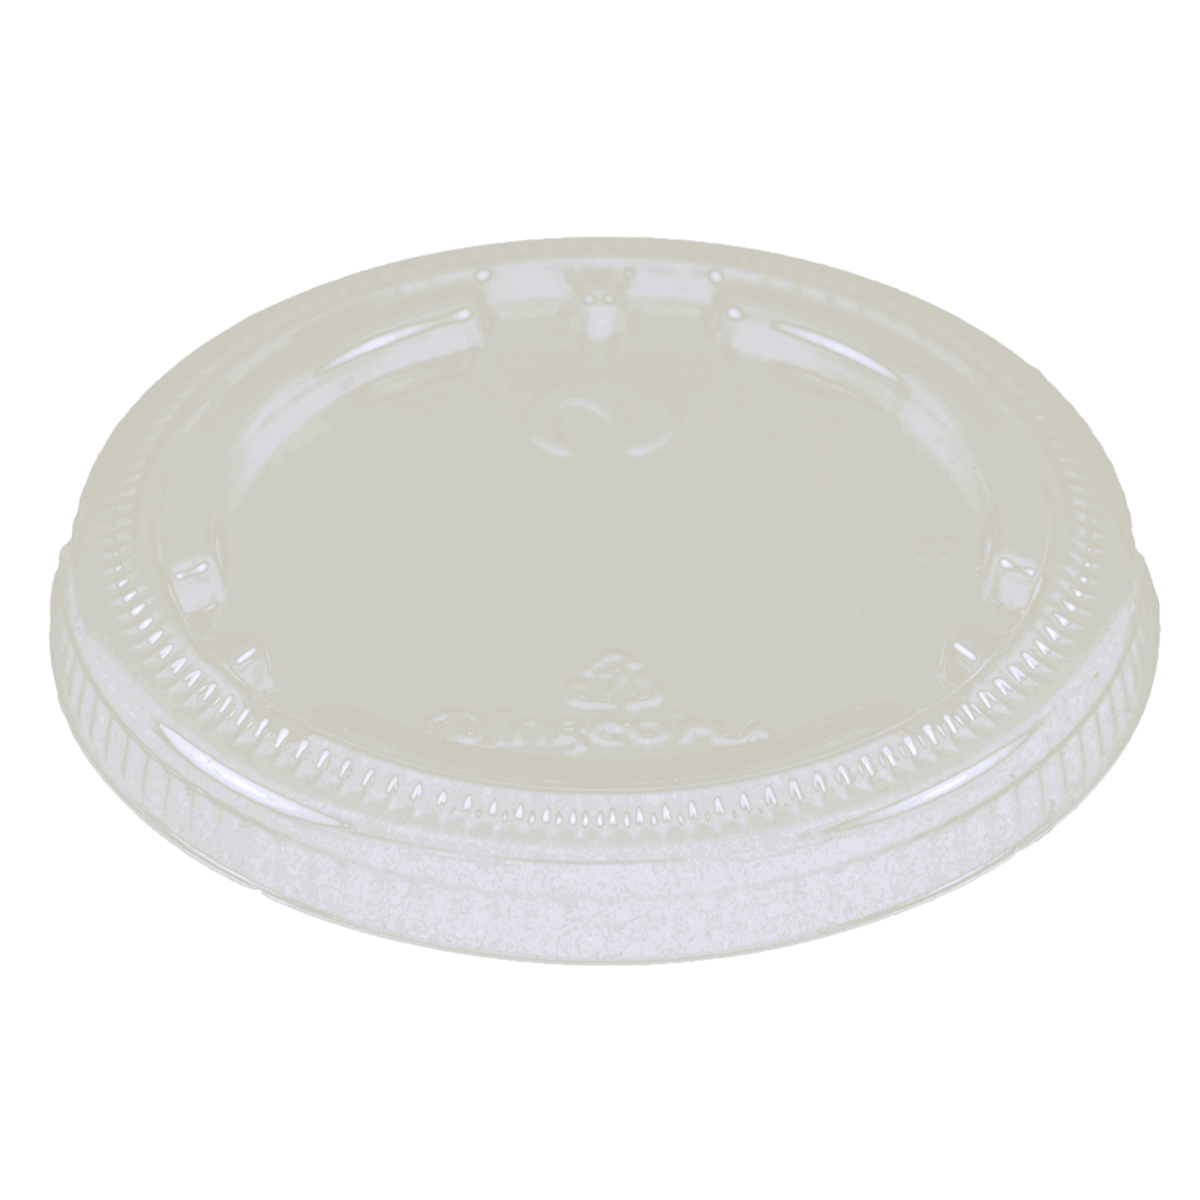 PLA LID 4 to 9 oz cold cups 2 oz flat portion cups, no straw hole